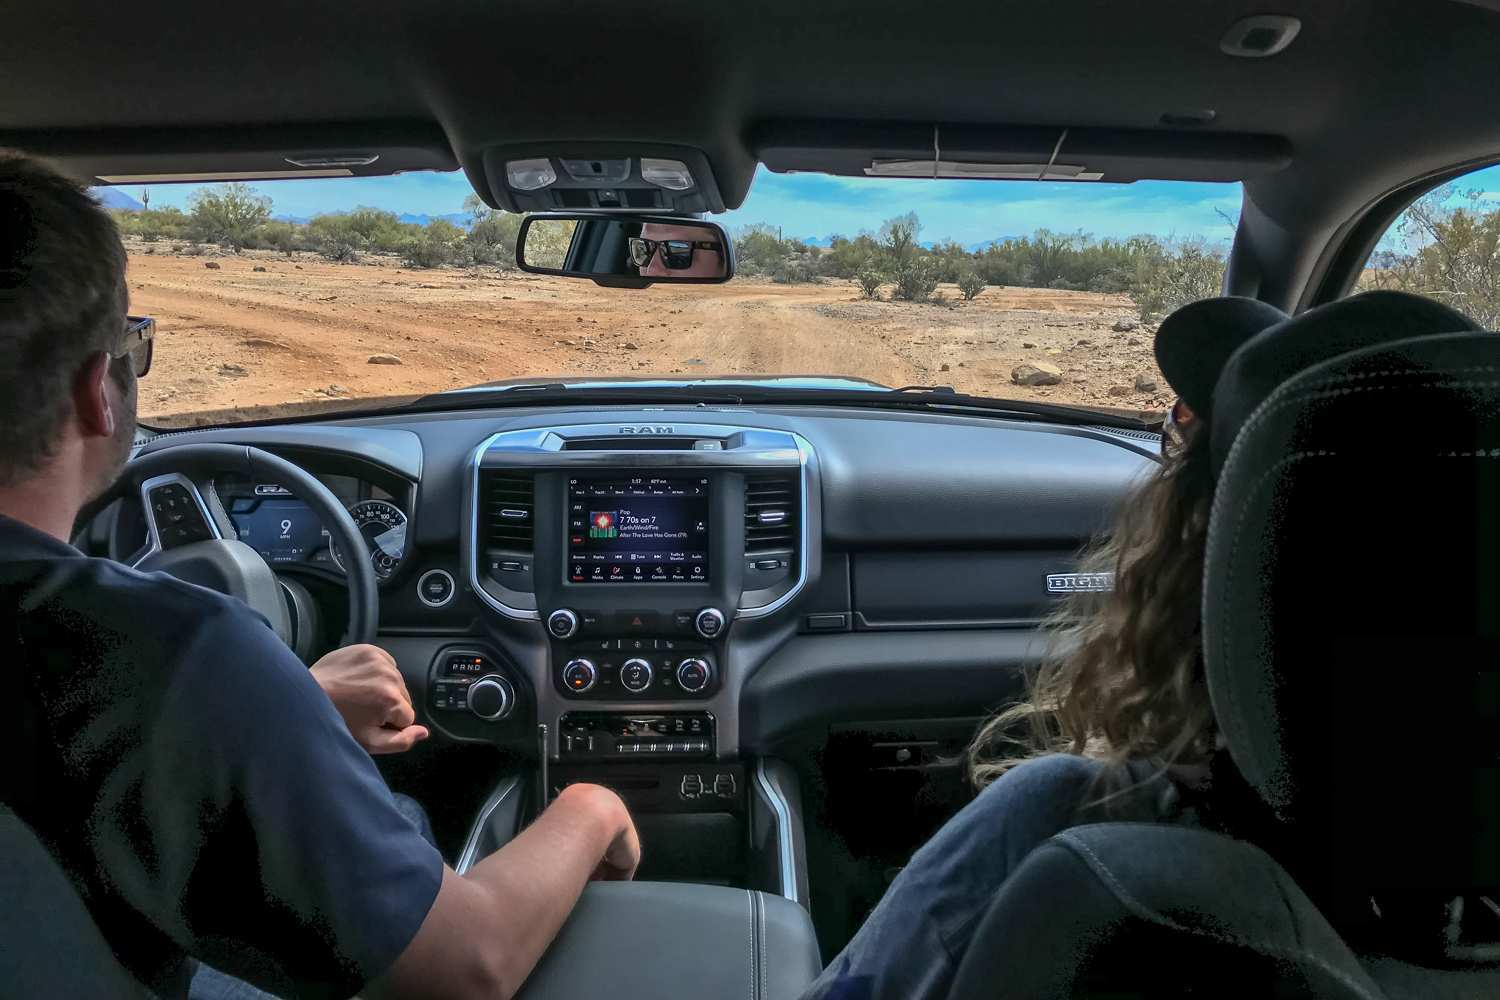 24 Gallery of 2019 Dodge Ram 1500 Review Concept for 2019 Dodge Ram 1500 Review